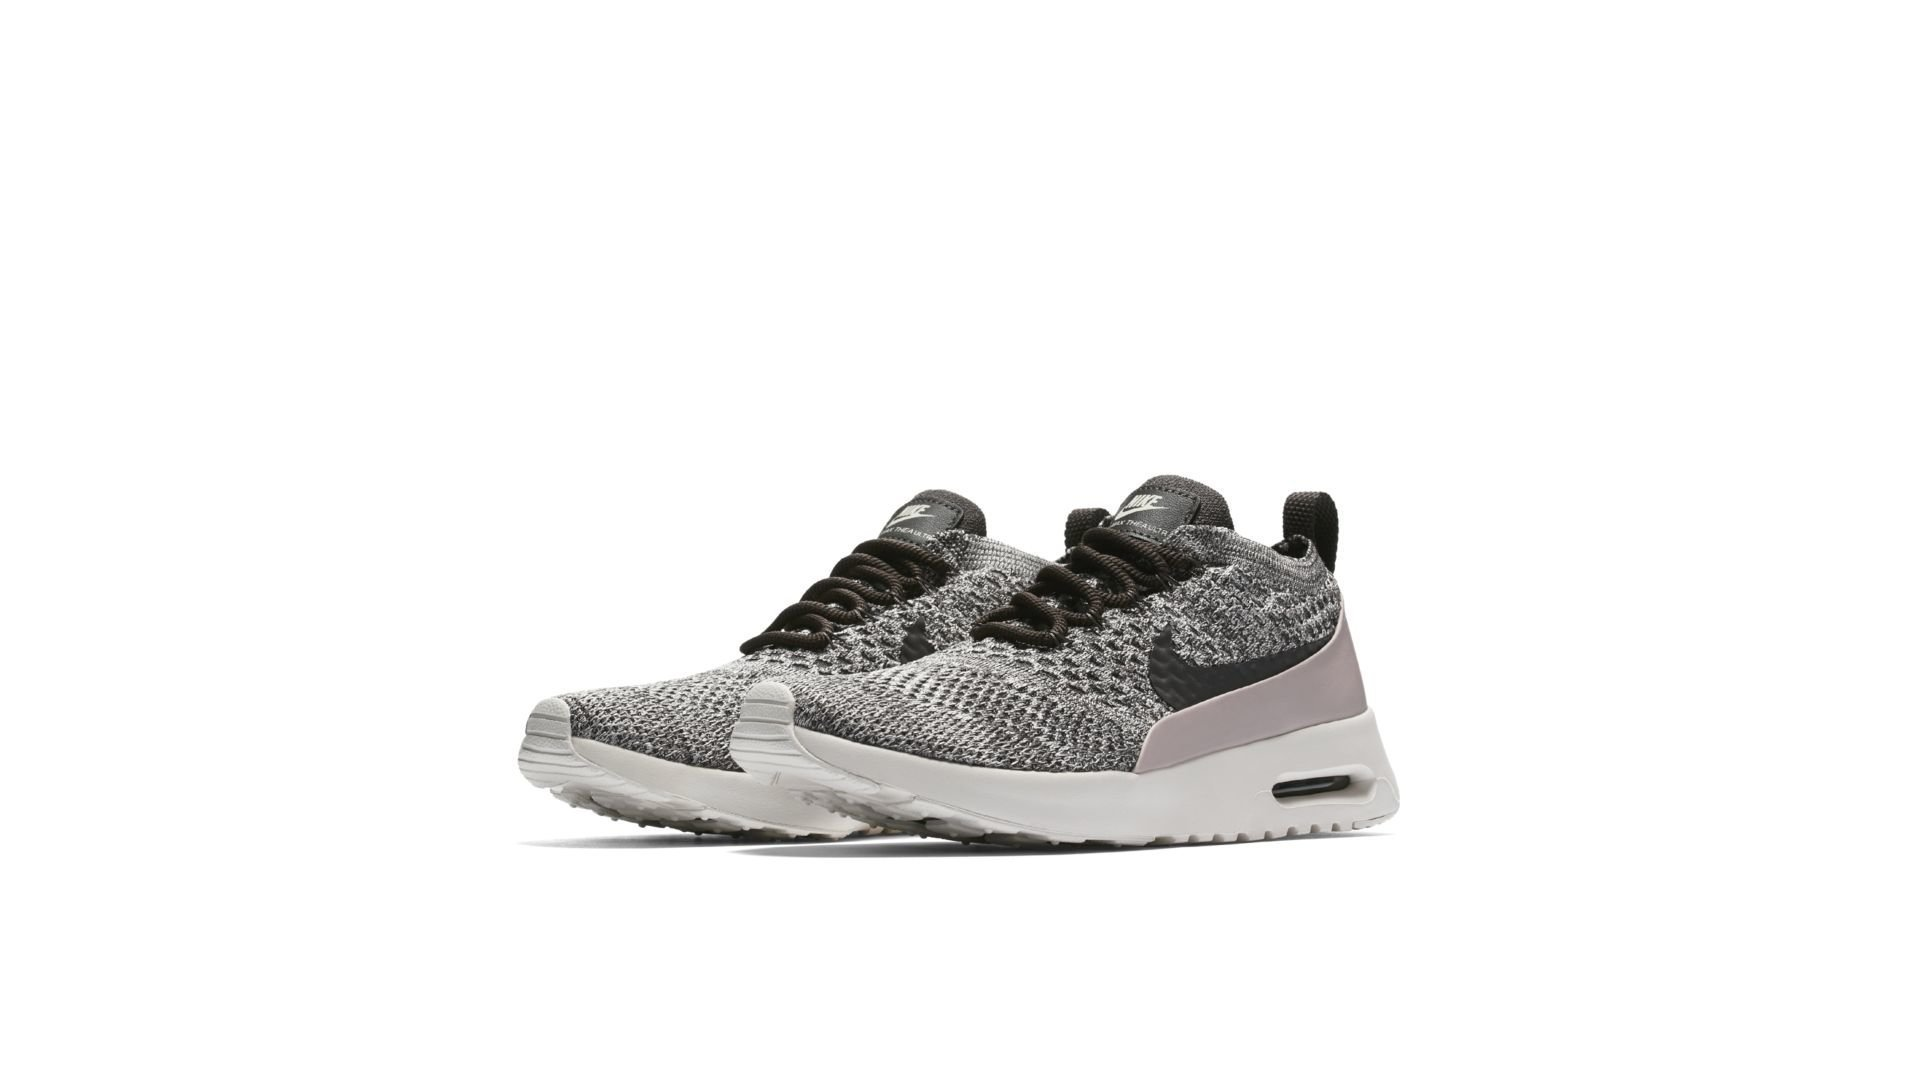 Nike Air Max Thea Ultra Flyknit Midnight Fog (881175-003)